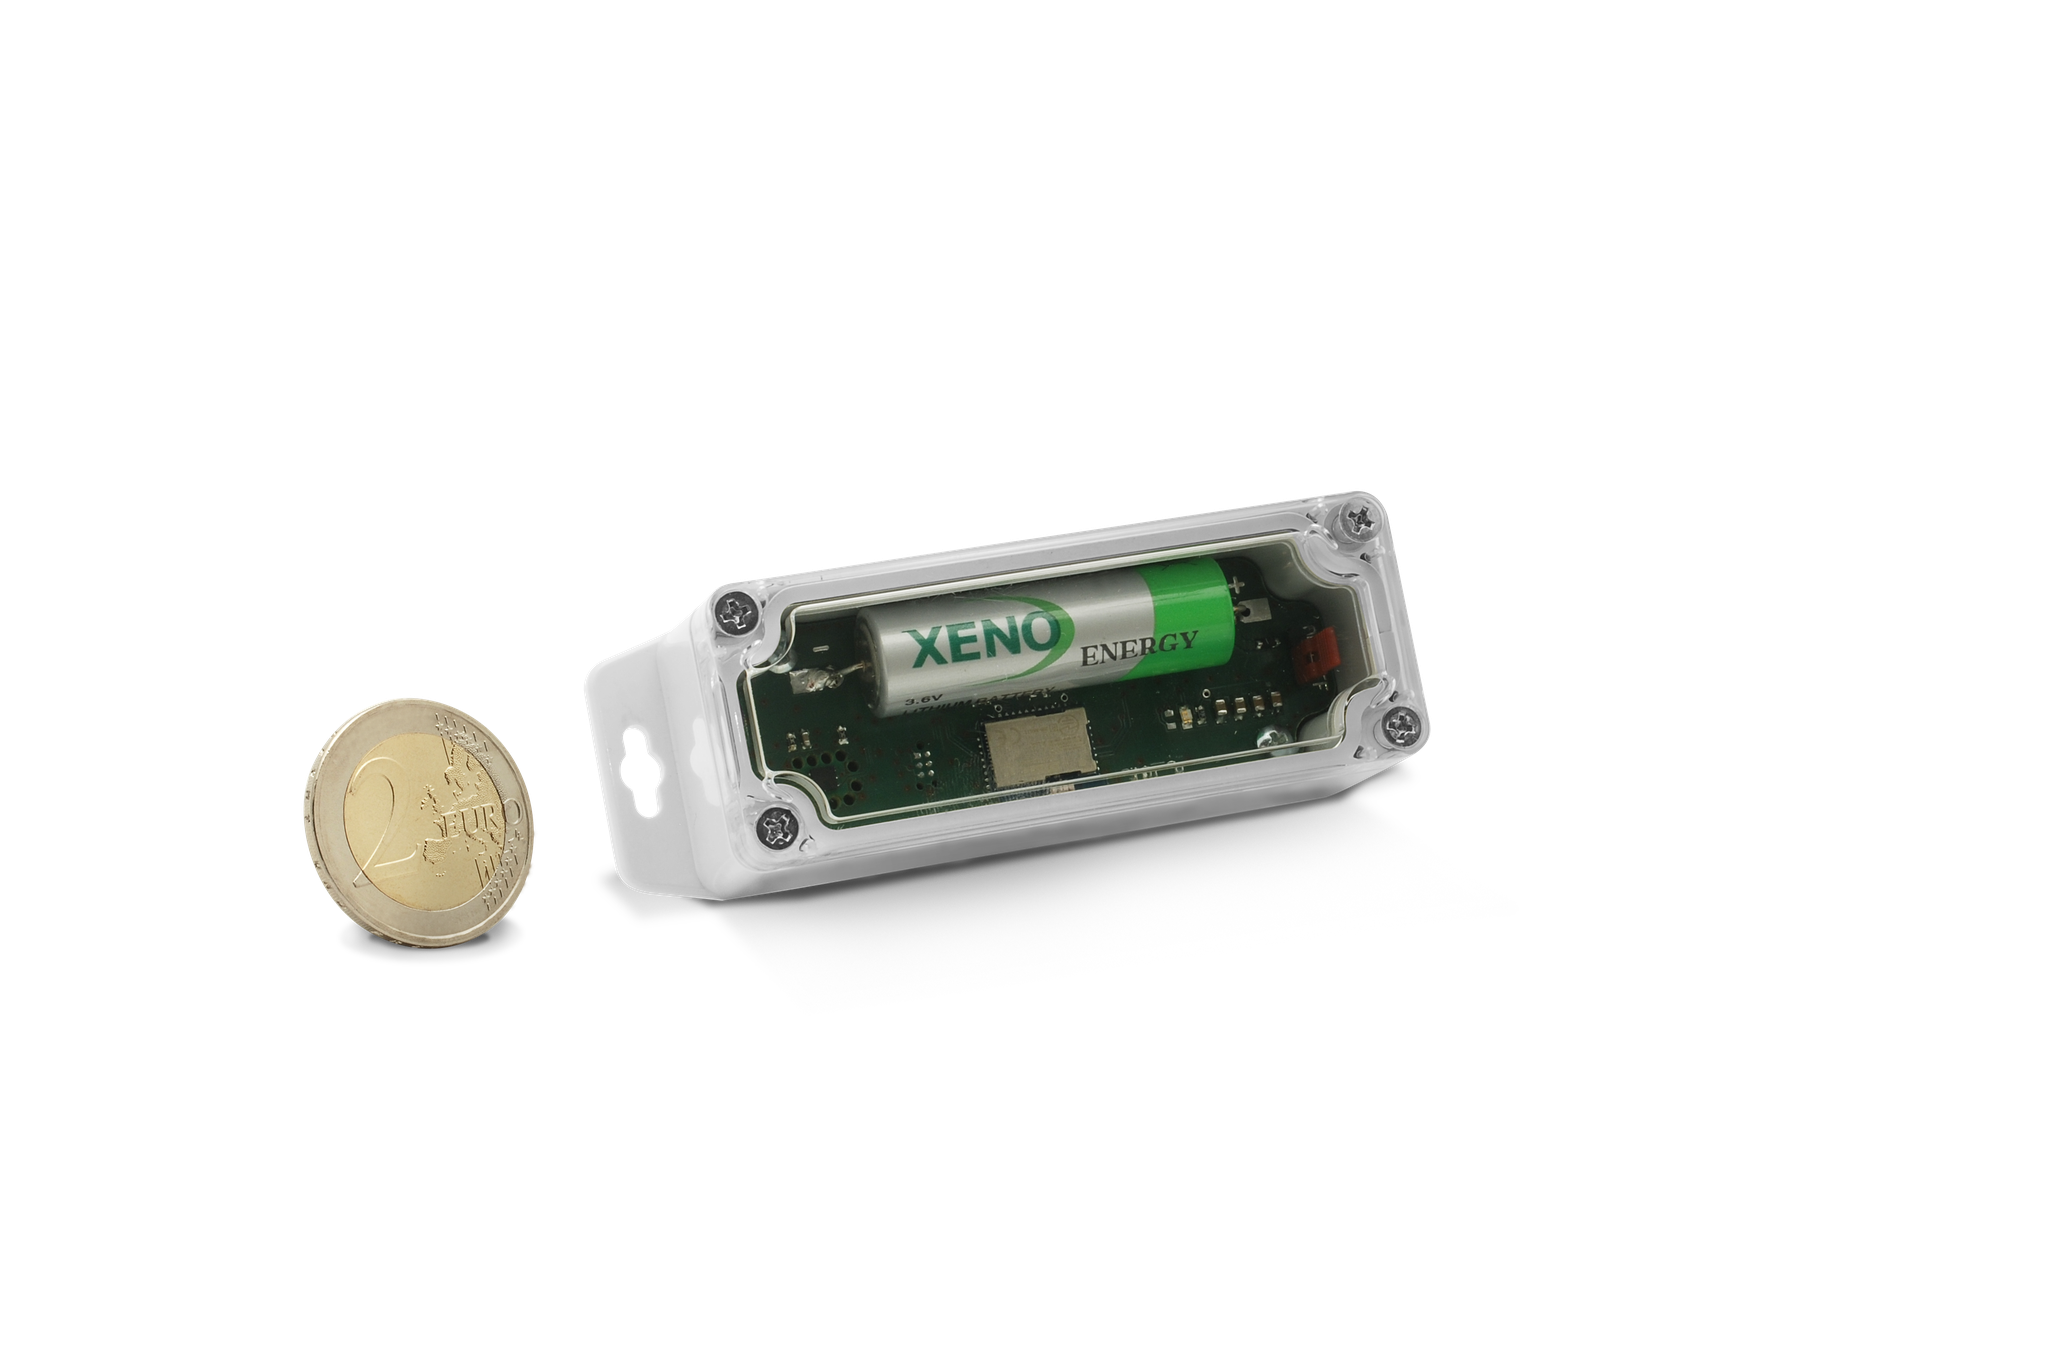 Industrial Smart TAG - extensive range of sensors possible, e.g. for temperature, humidity, light, air pressure, gas, carbon dioxide,  3-D movement/shock/vibration (Inertial-Sensor) and others